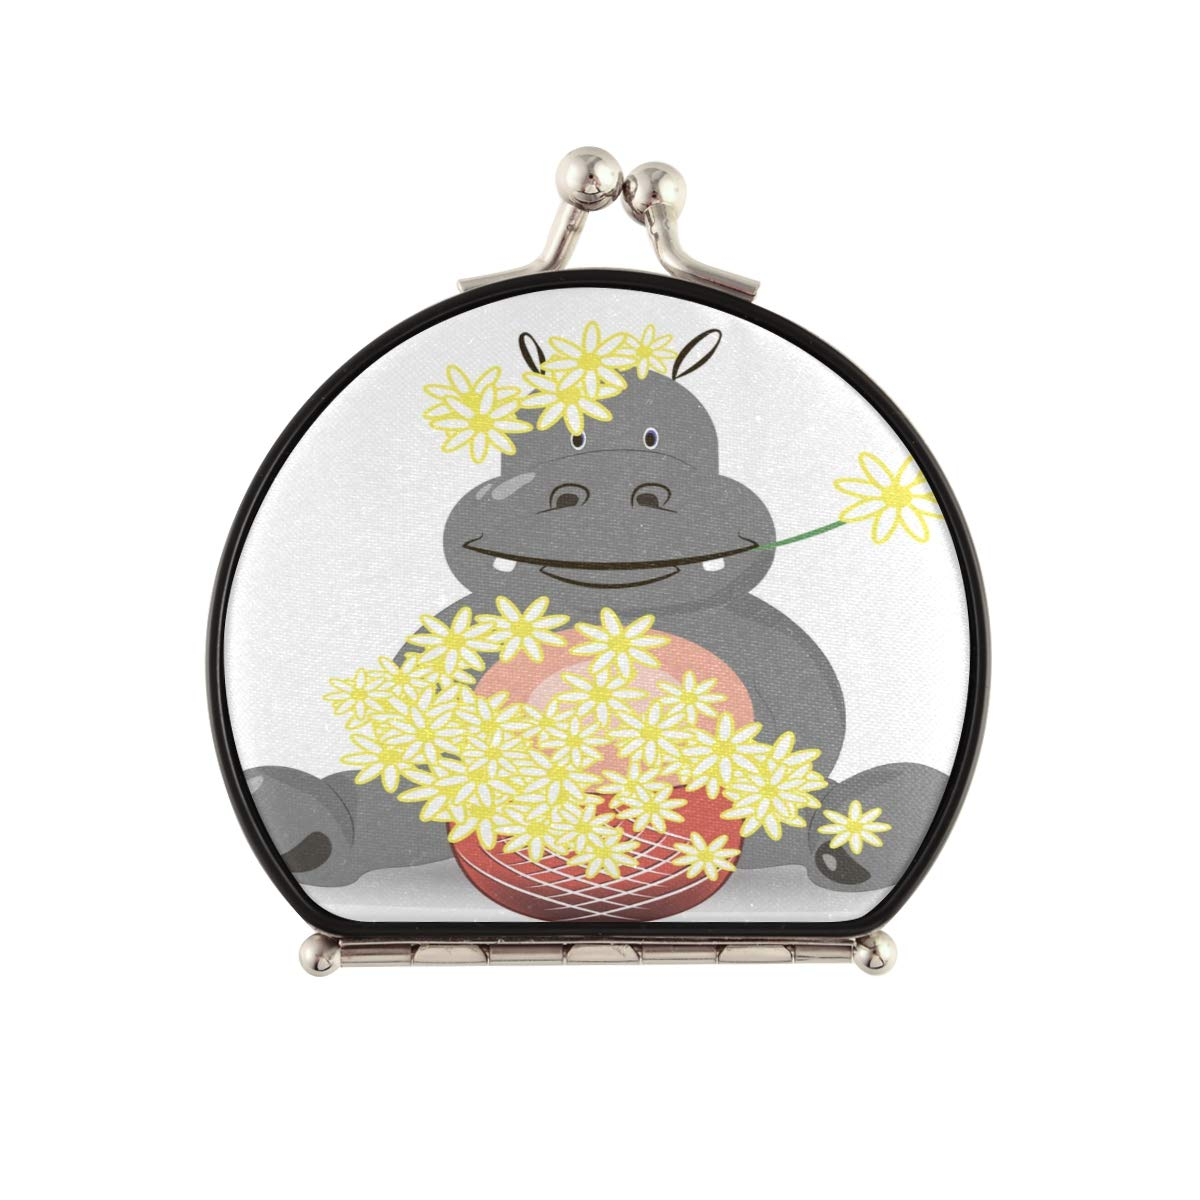 Magnifying Compact Cosmetic Mirror Image Am Hippopotamus Genuine Limited time for free shipping Sitting